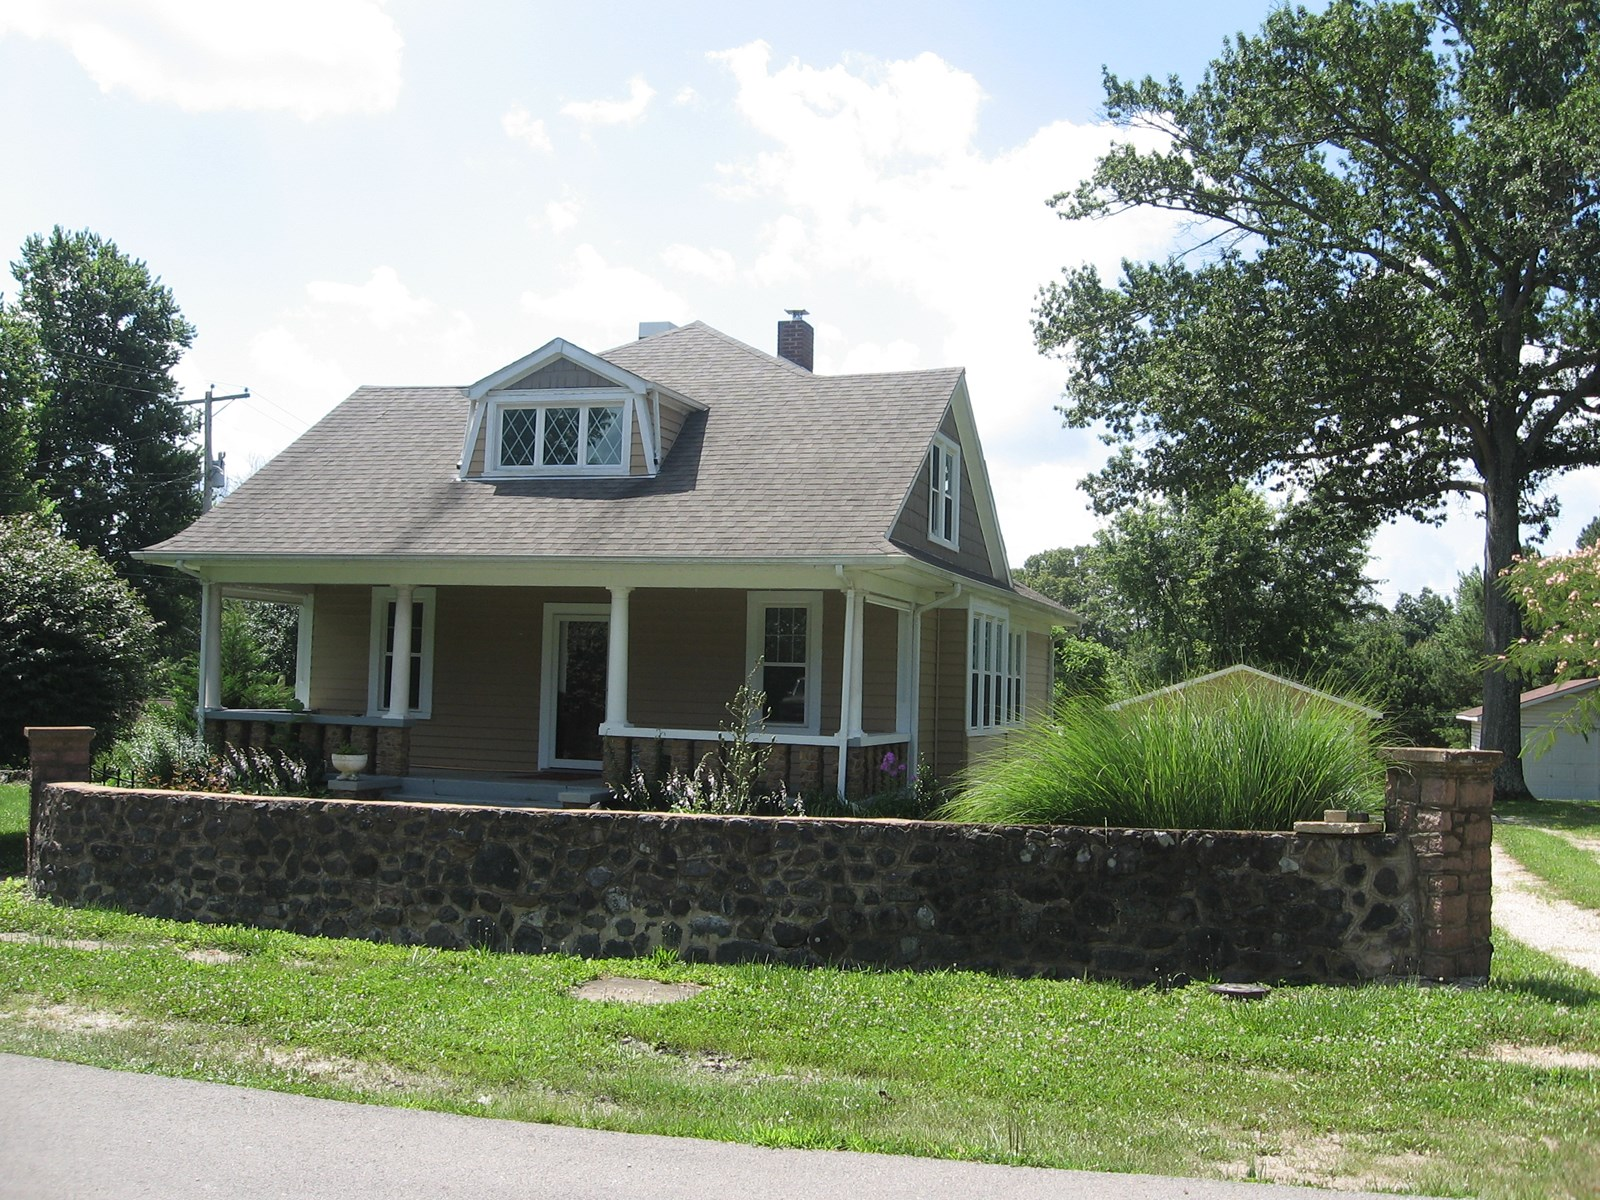 3-BR, 2-BA HISTORIC HOME IN IRONTON, MO: